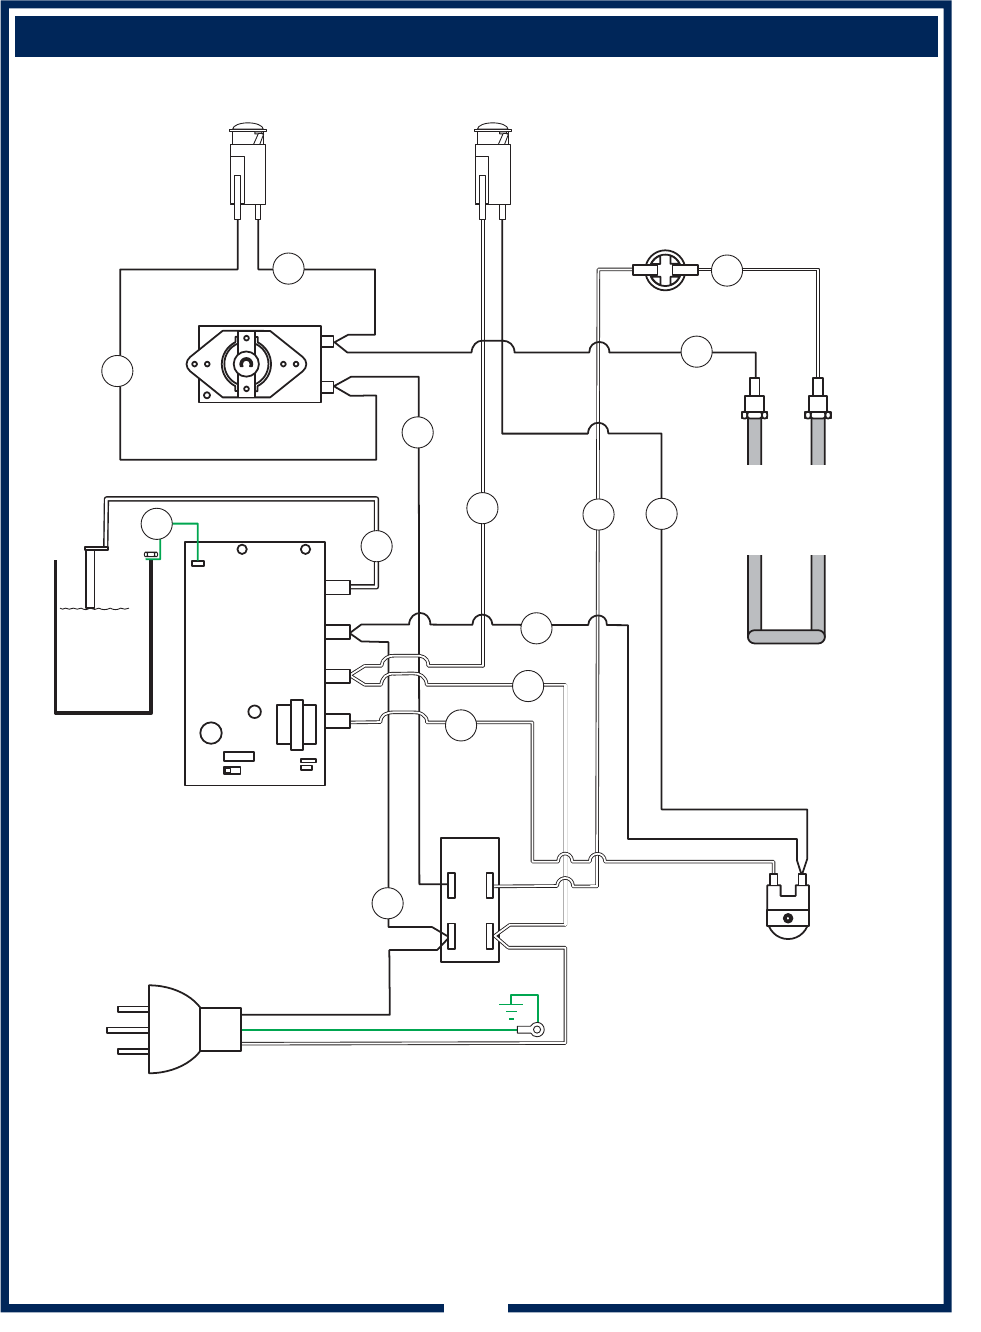 water cooler wiring diagram water image wiring diagram water cooler wiring water wiring diagrams car on water cooler wiring diagram